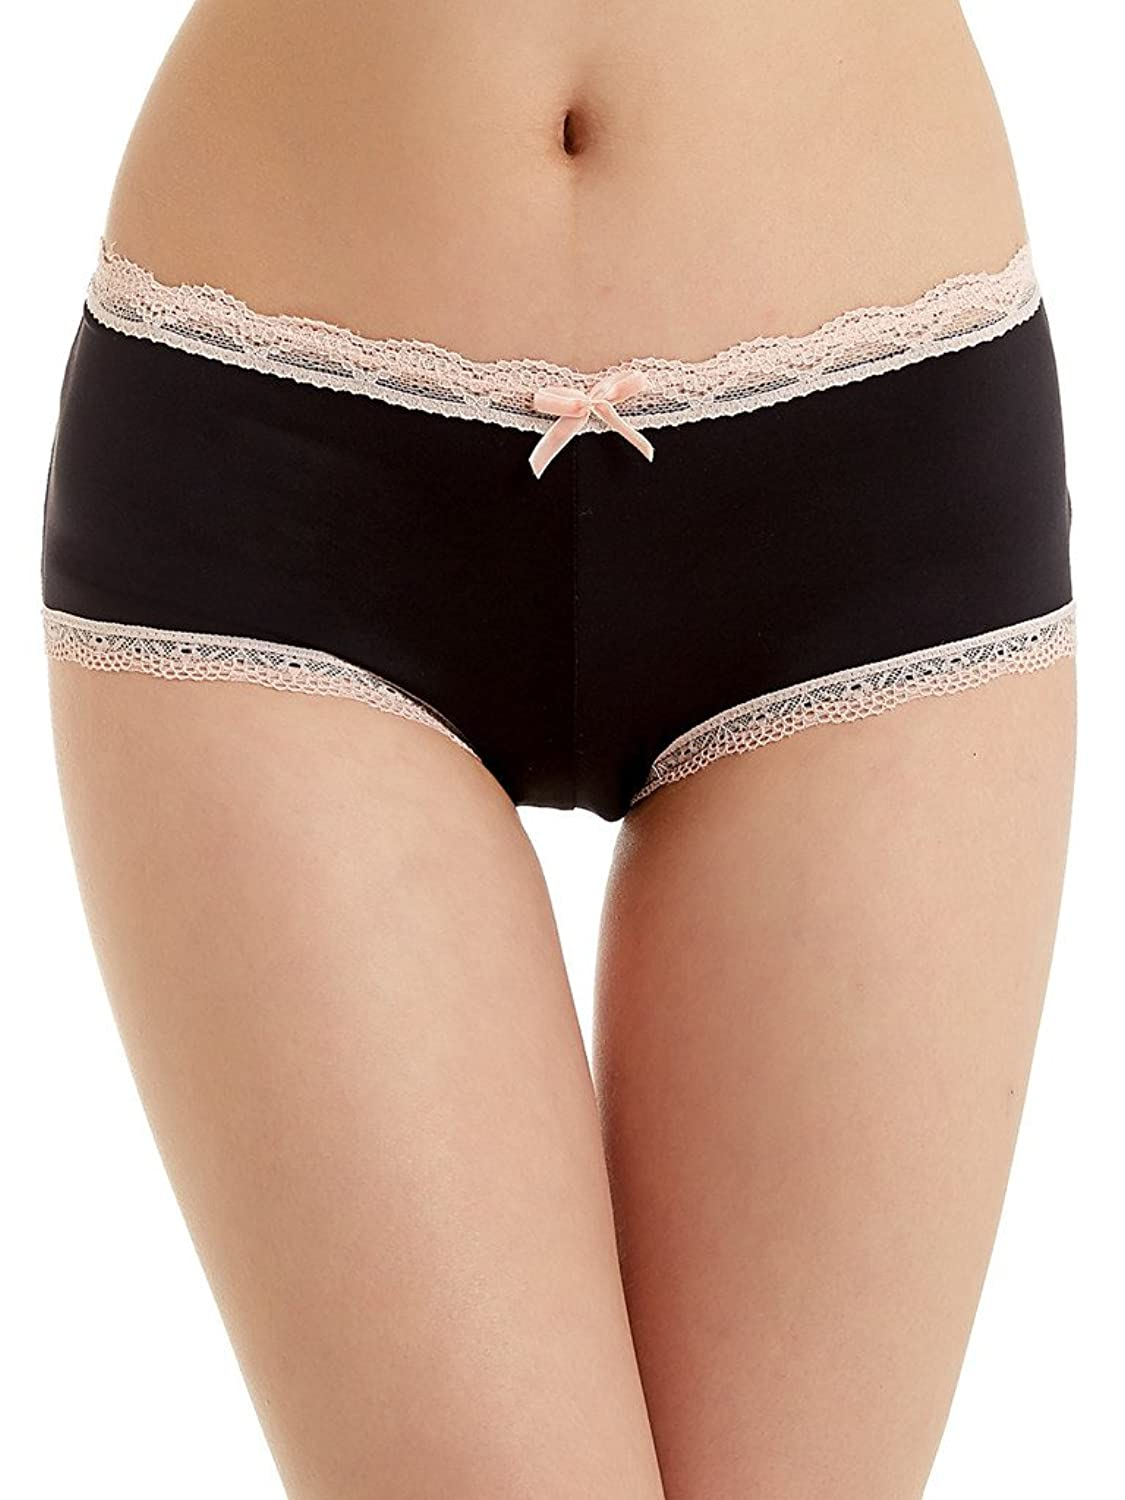 Attraco Women's High Rise Briefs Panties with Lace Trim Knickers Black